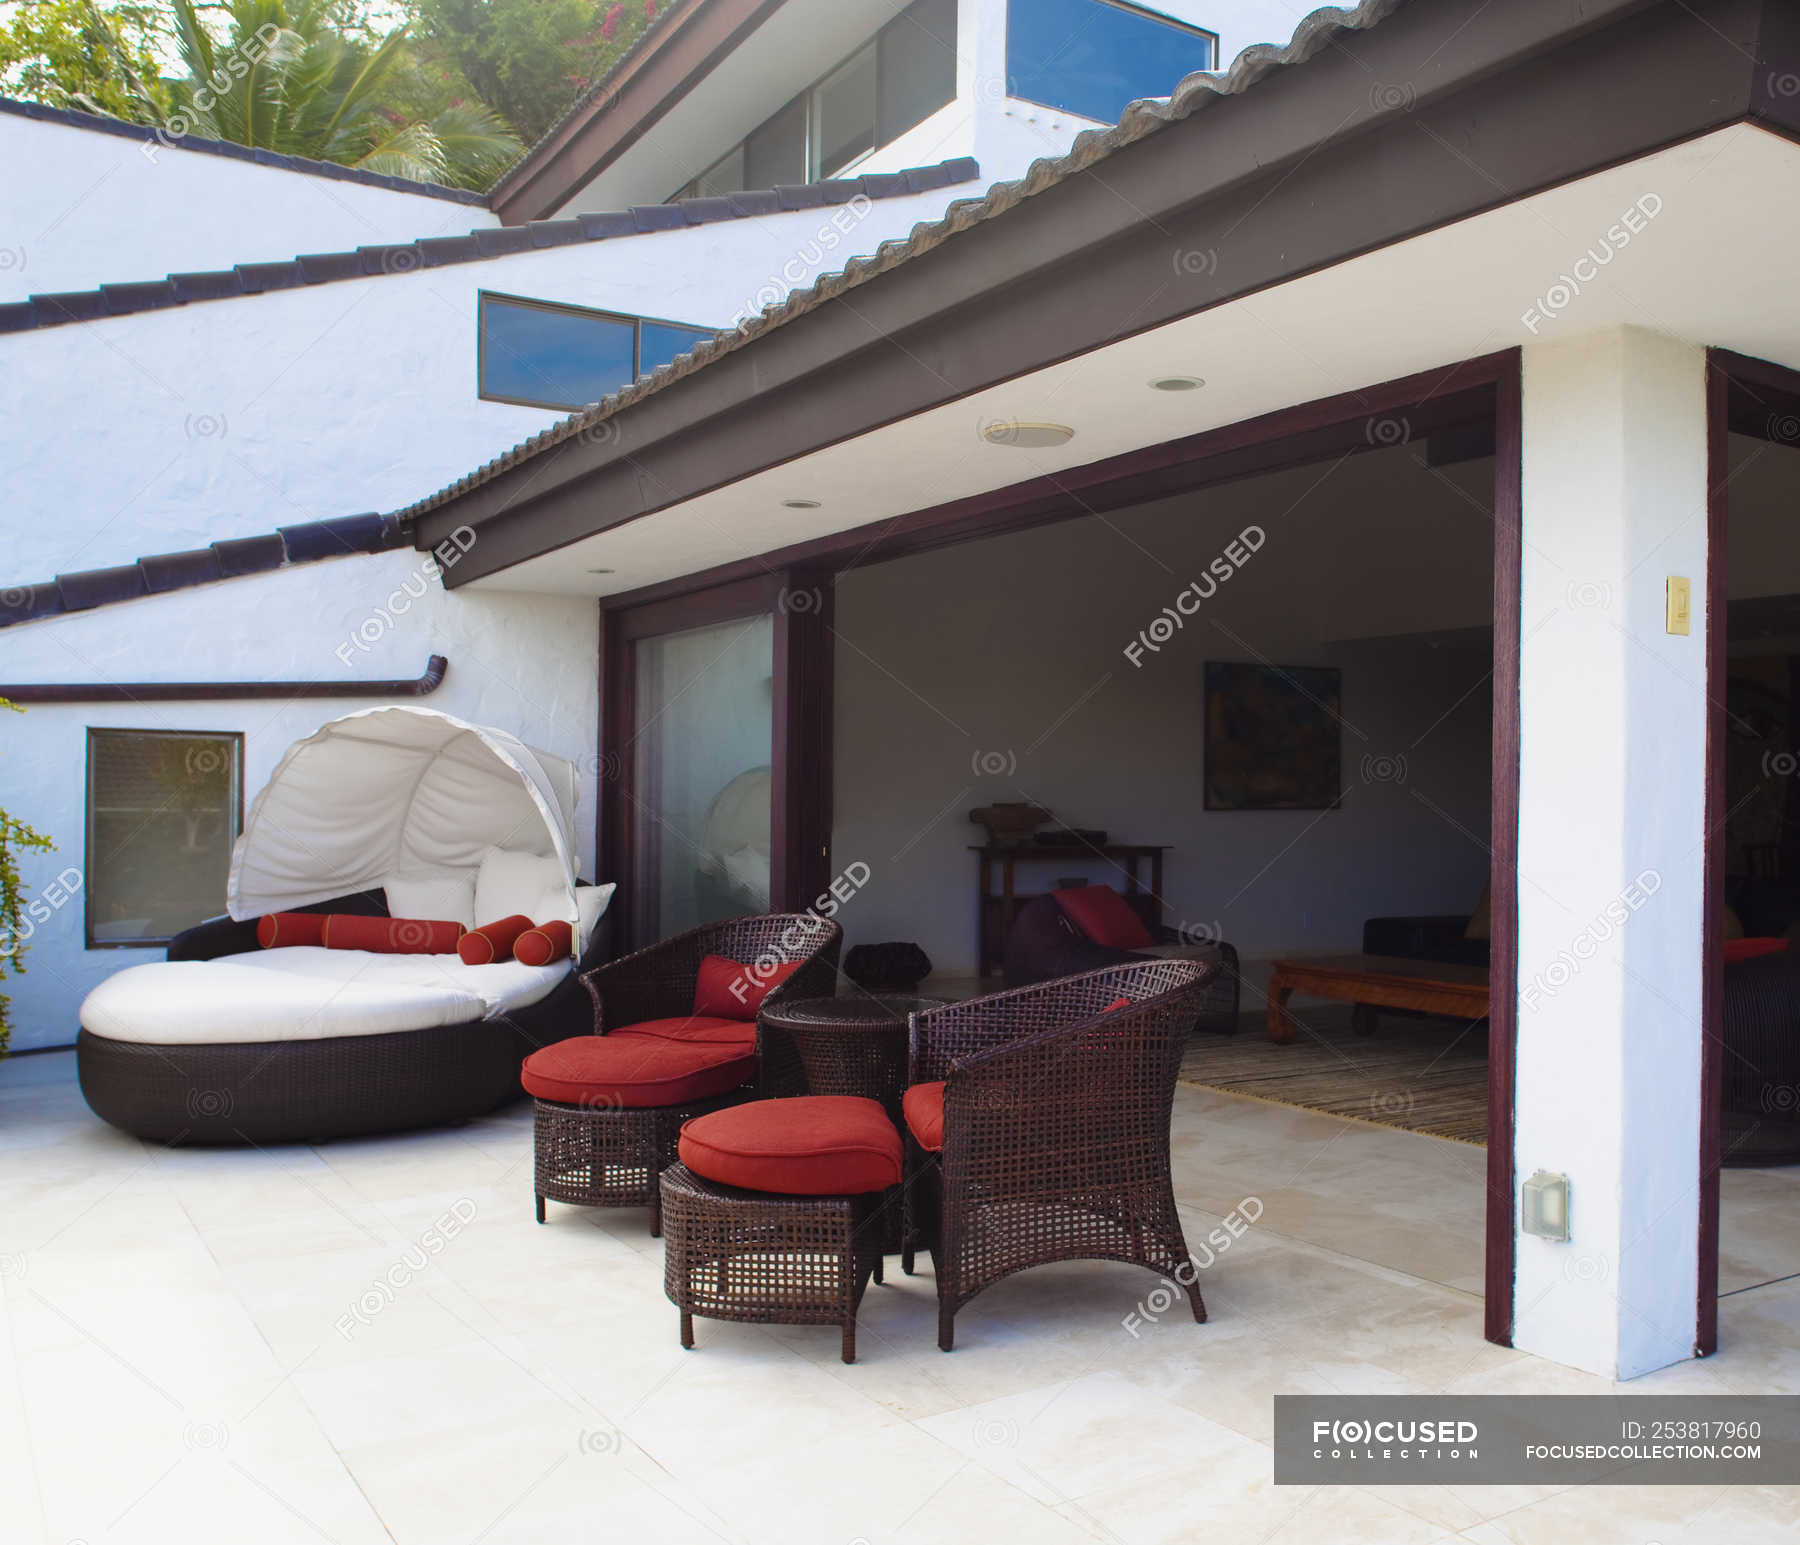 Luxury Patio Furniture In Vacation